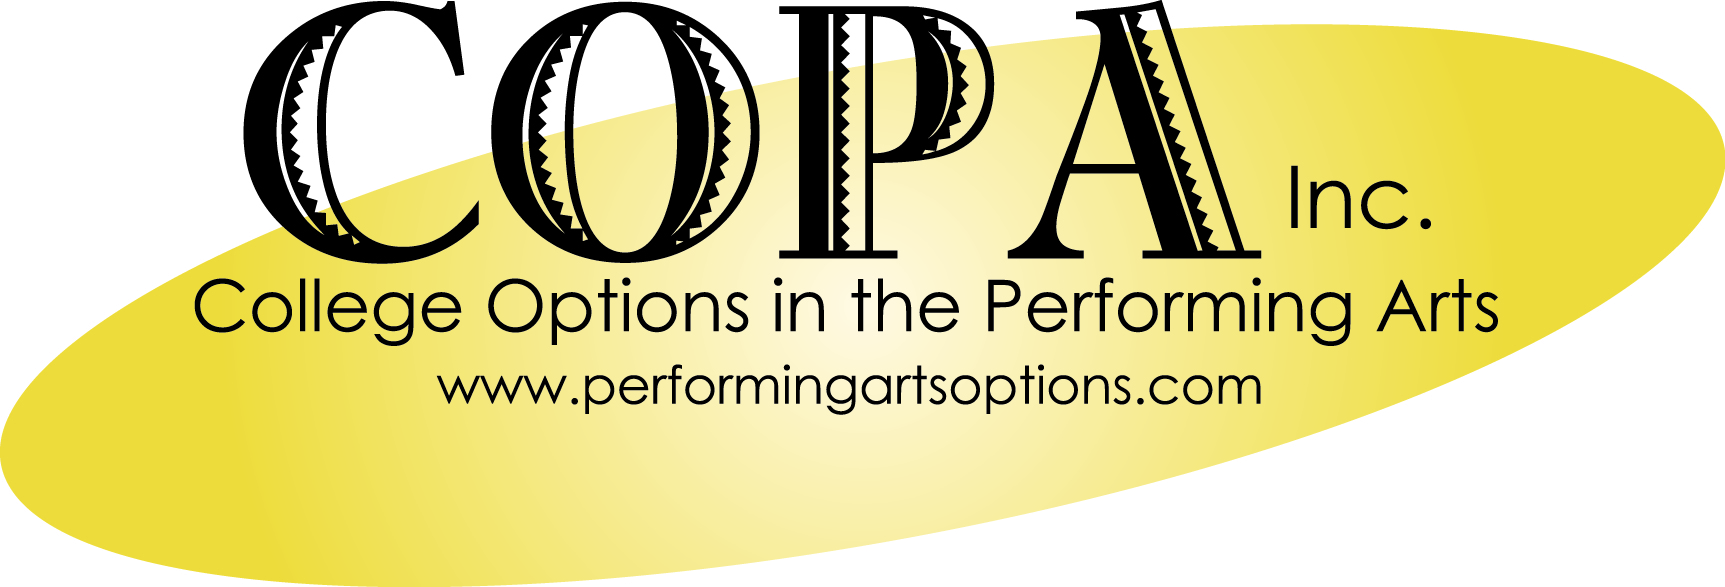 Business - College Advisors | COPA, Inc.: College Options in the Performing Arts